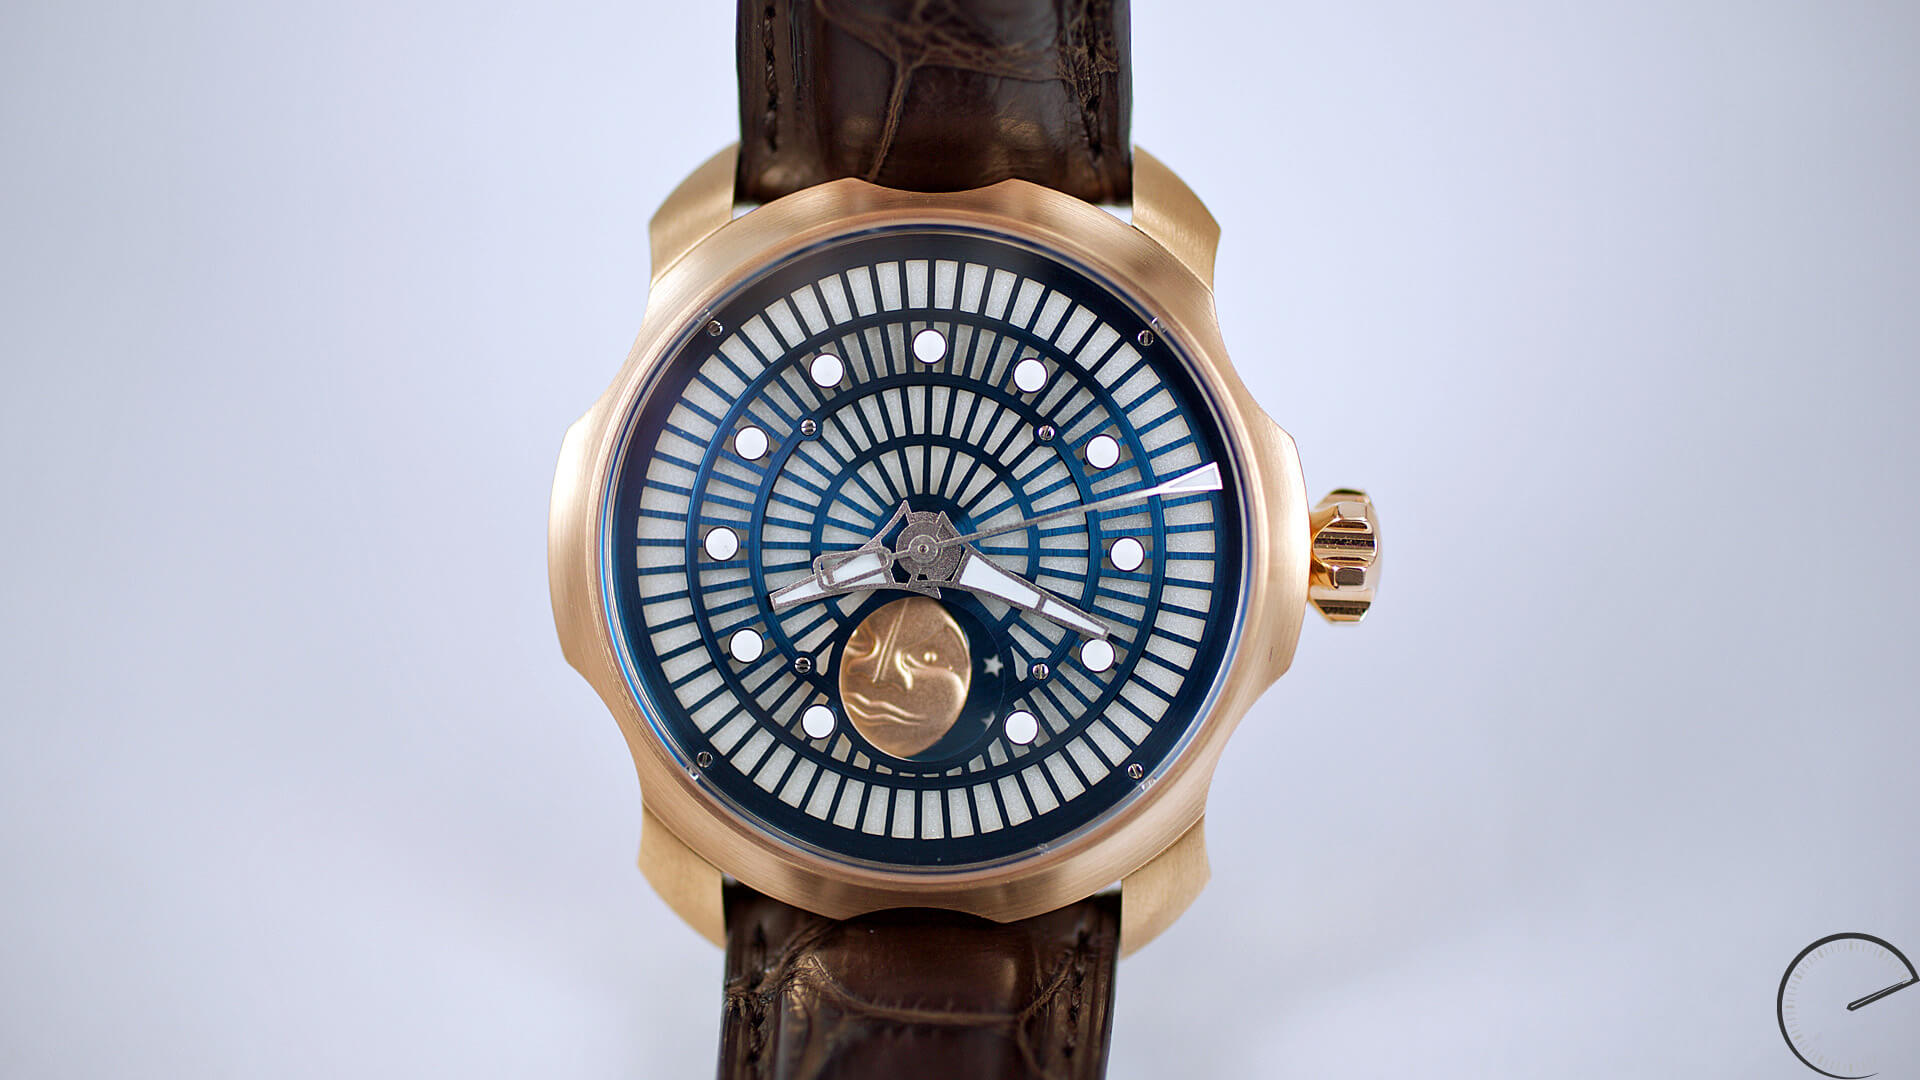 Image of Sarpaneva Watches - Northern Lights with luminescent dial